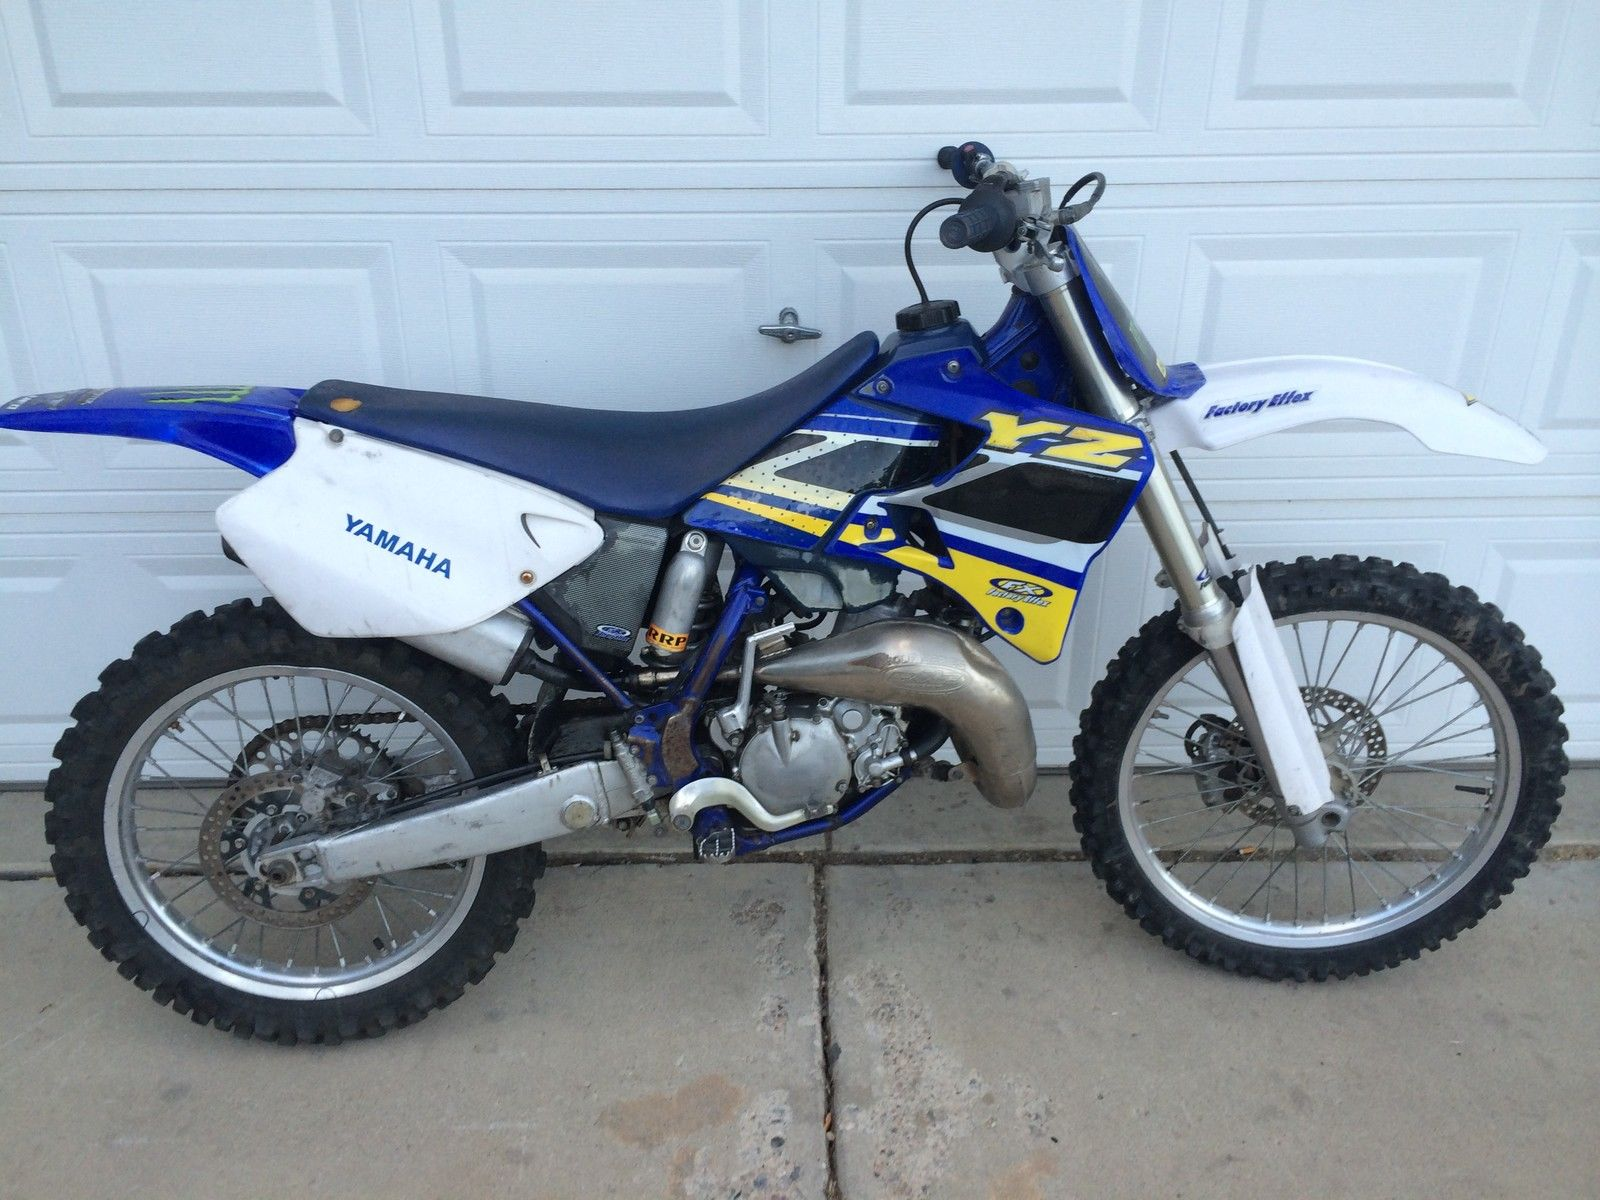 1983 yamaha 125 yz parts pictures to pin on pinterest